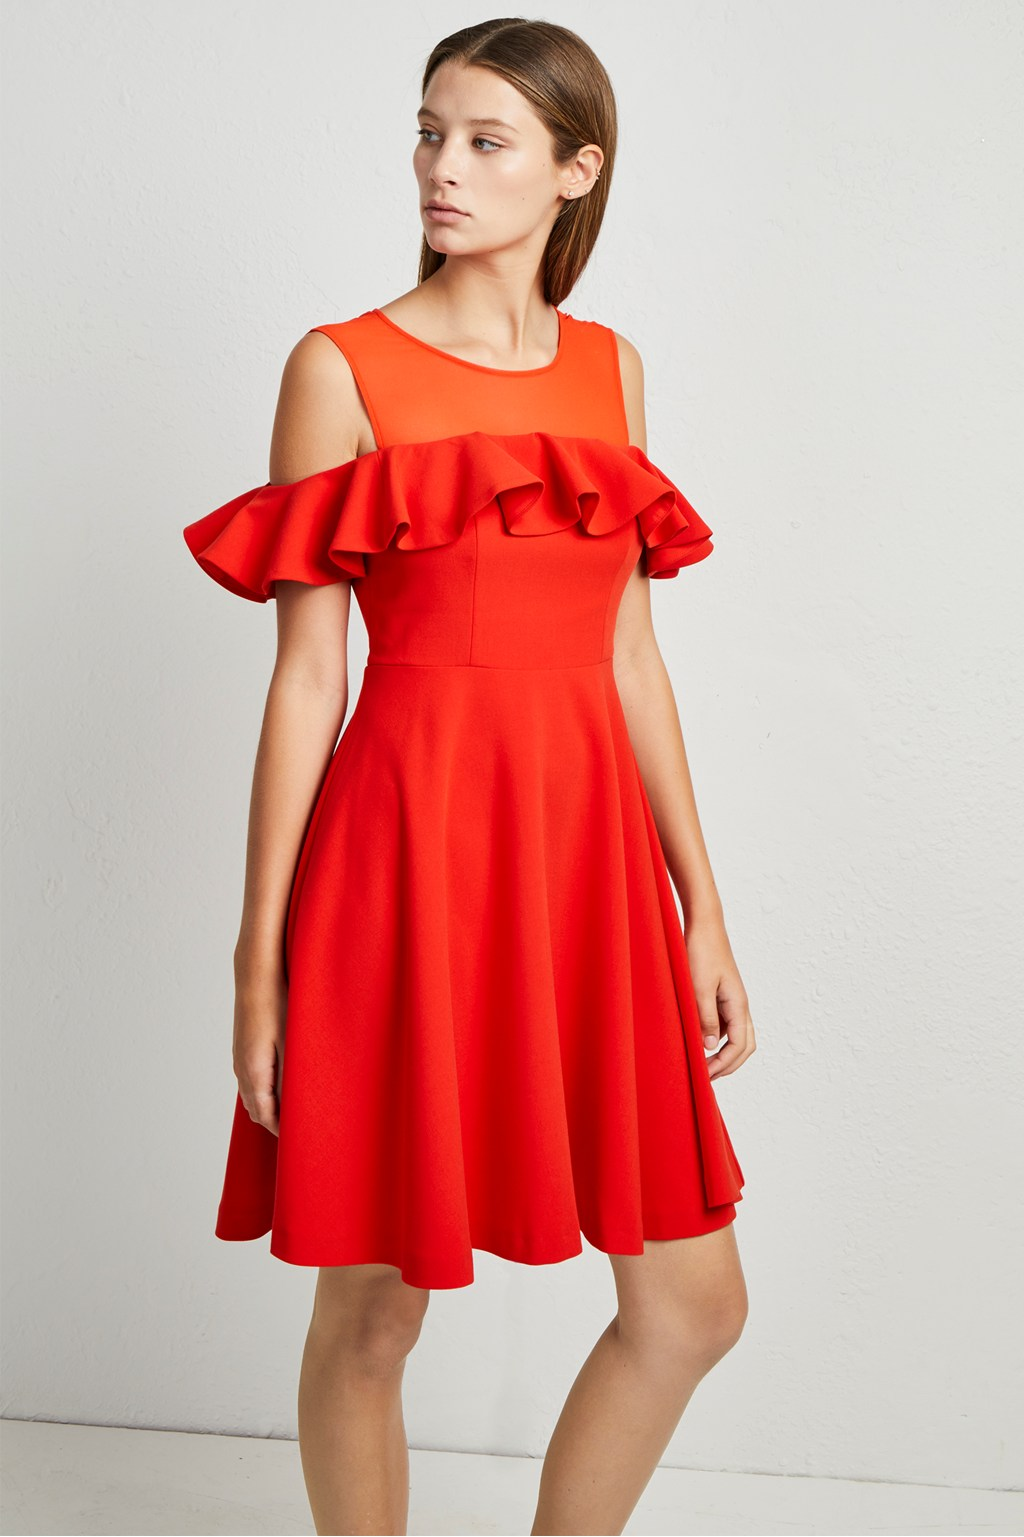 465ca07478e Alissa Flare Cold Shoulder Dress. loading images.